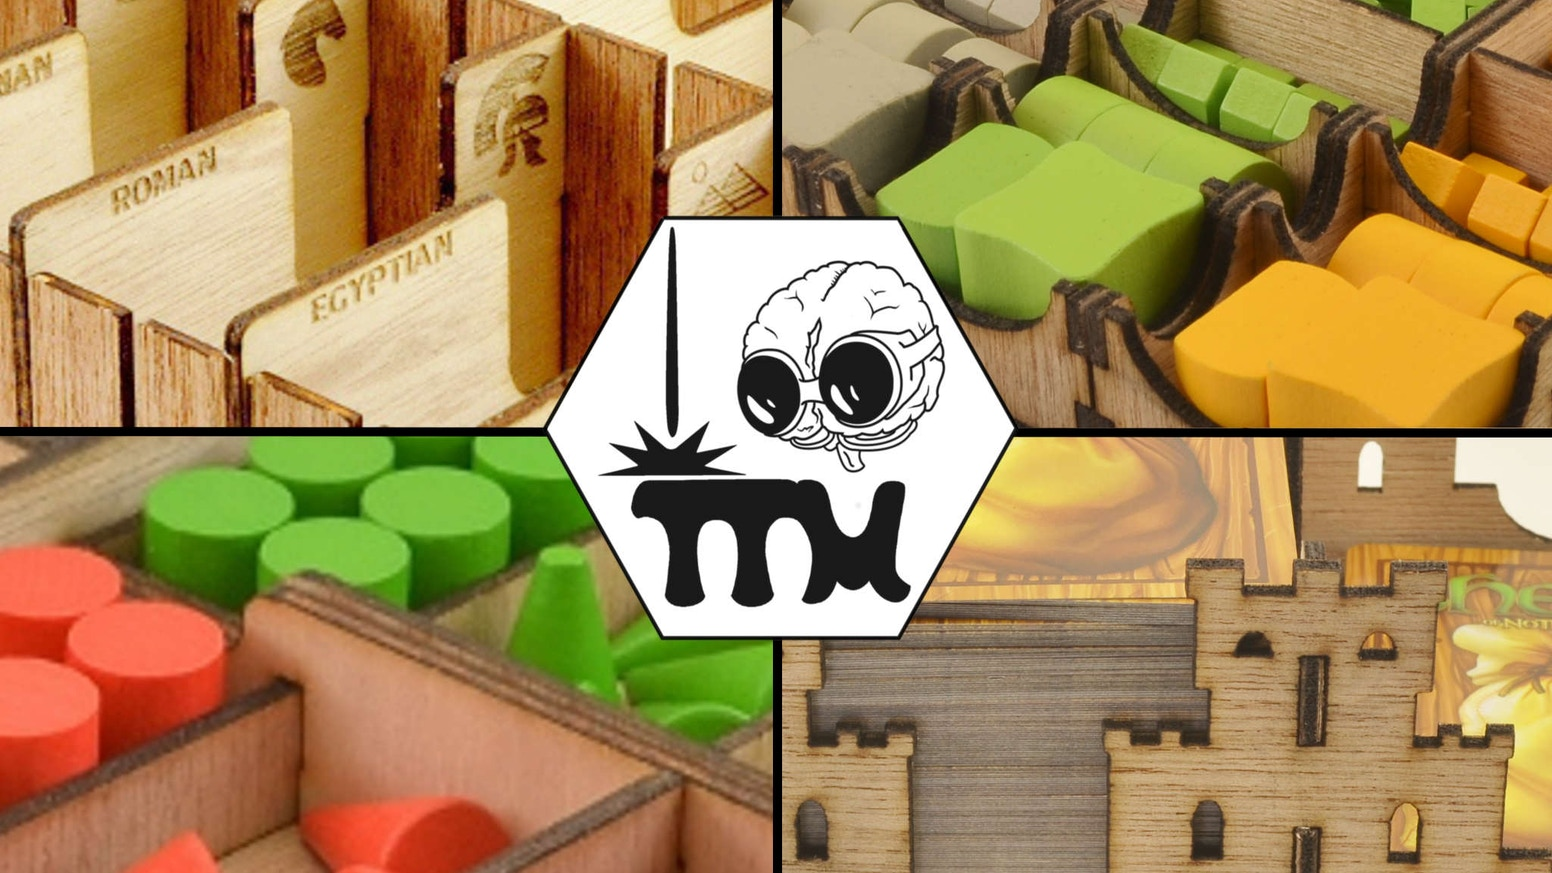 Board game inserts and boxes to organize your game shelf, get games setup fast and improve your table top gaming experience.